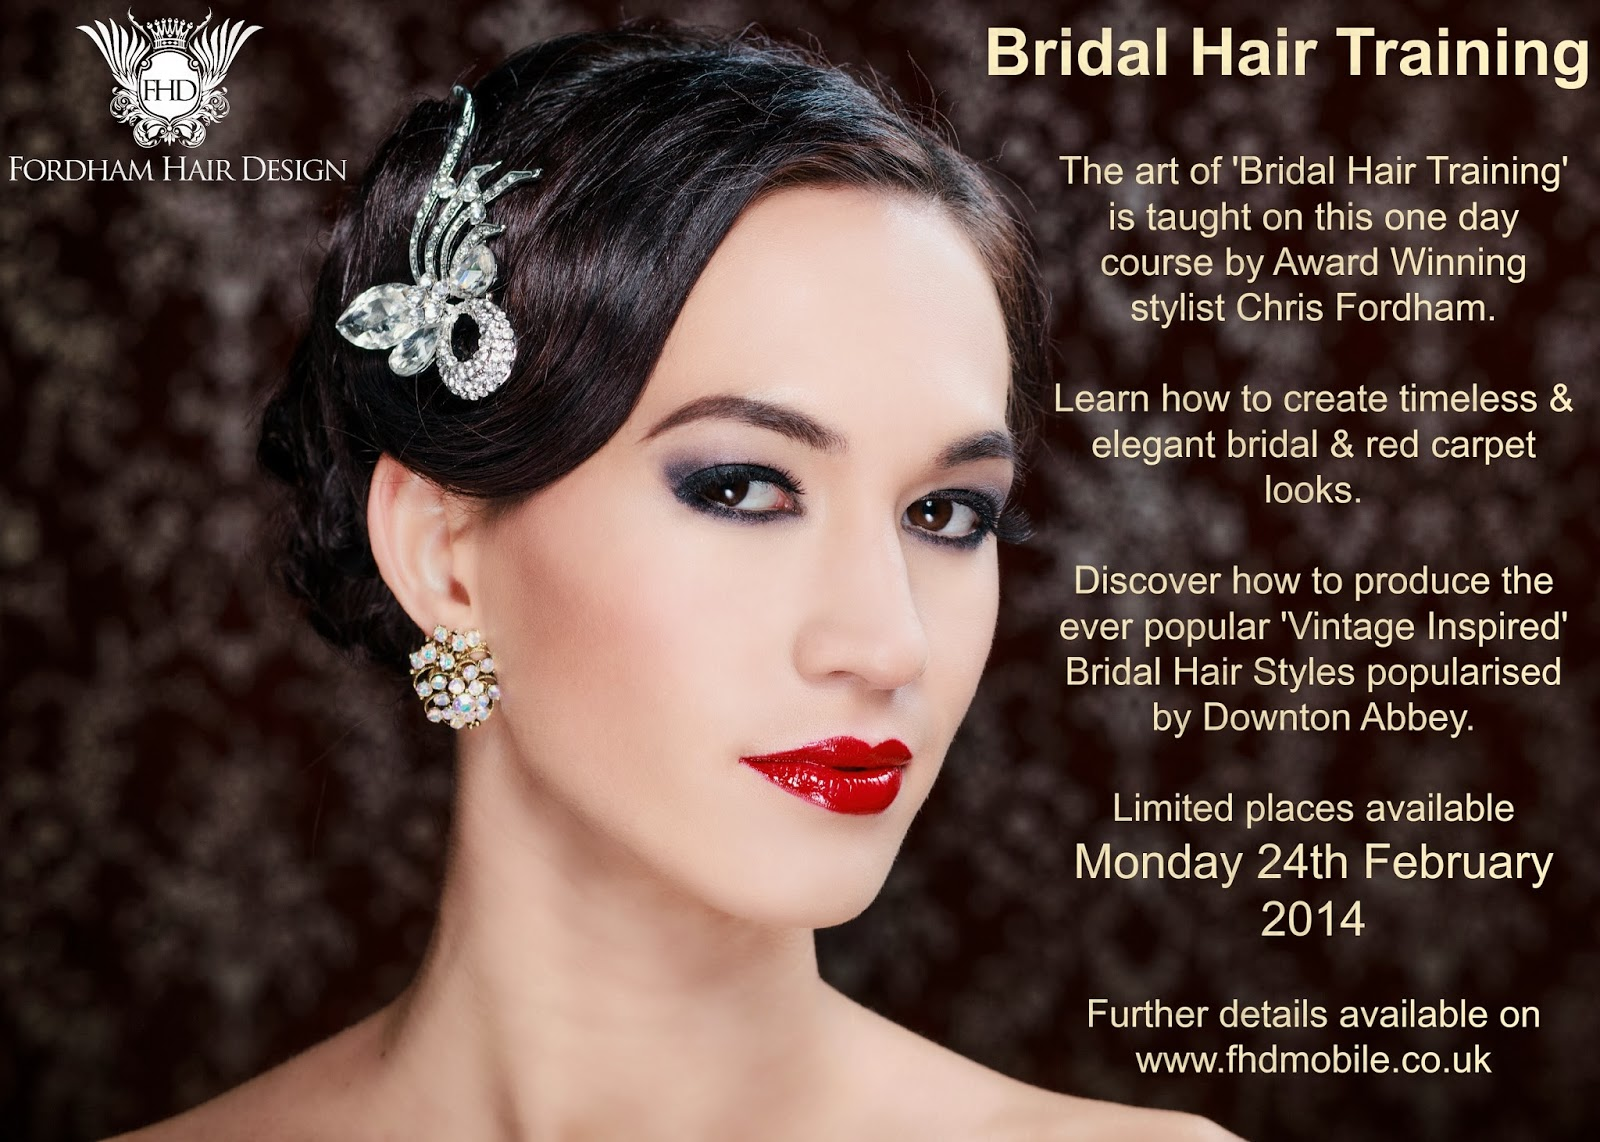 Wedding hair accessories gloucestershire - Bridal Hair Training In Gloucestershire Vintage And Red Carpet Looks